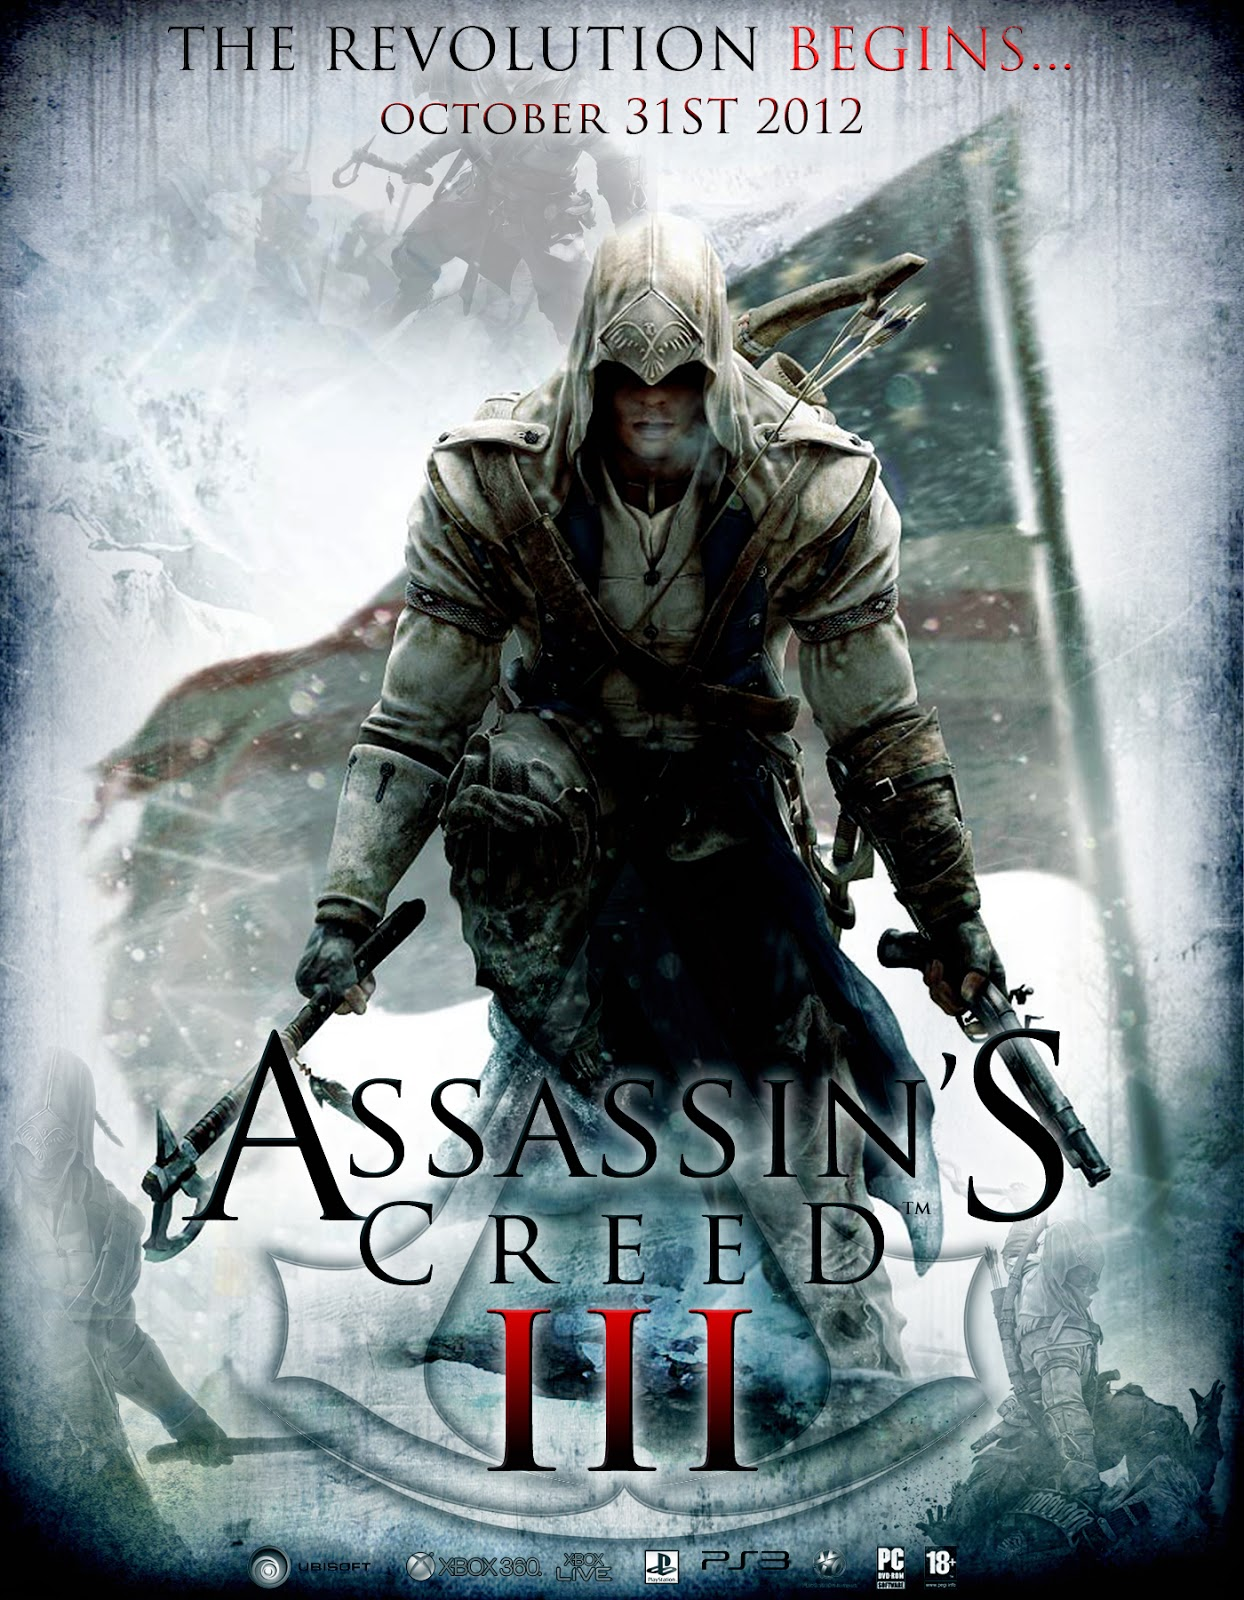 Unit 18 Advertising Production Assassins Creed 3 Poster Analysis